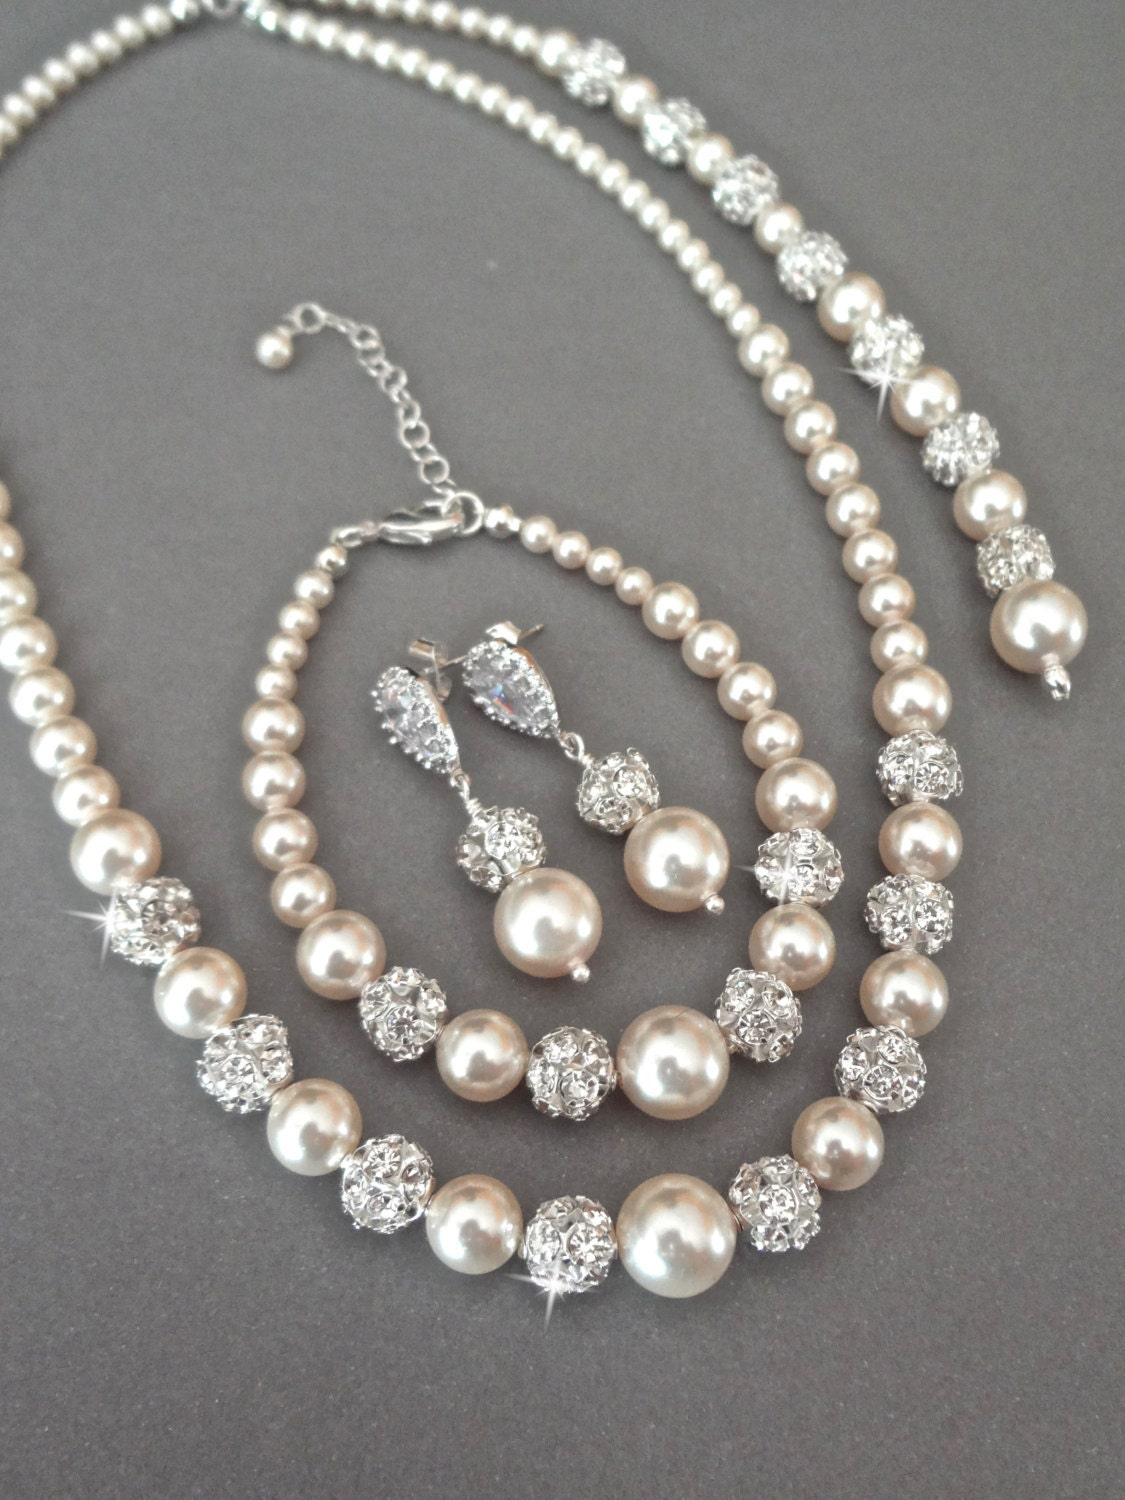 pearl jewelry set swarovski pearls and crystals 3 piece. Black Bedroom Furniture Sets. Home Design Ideas